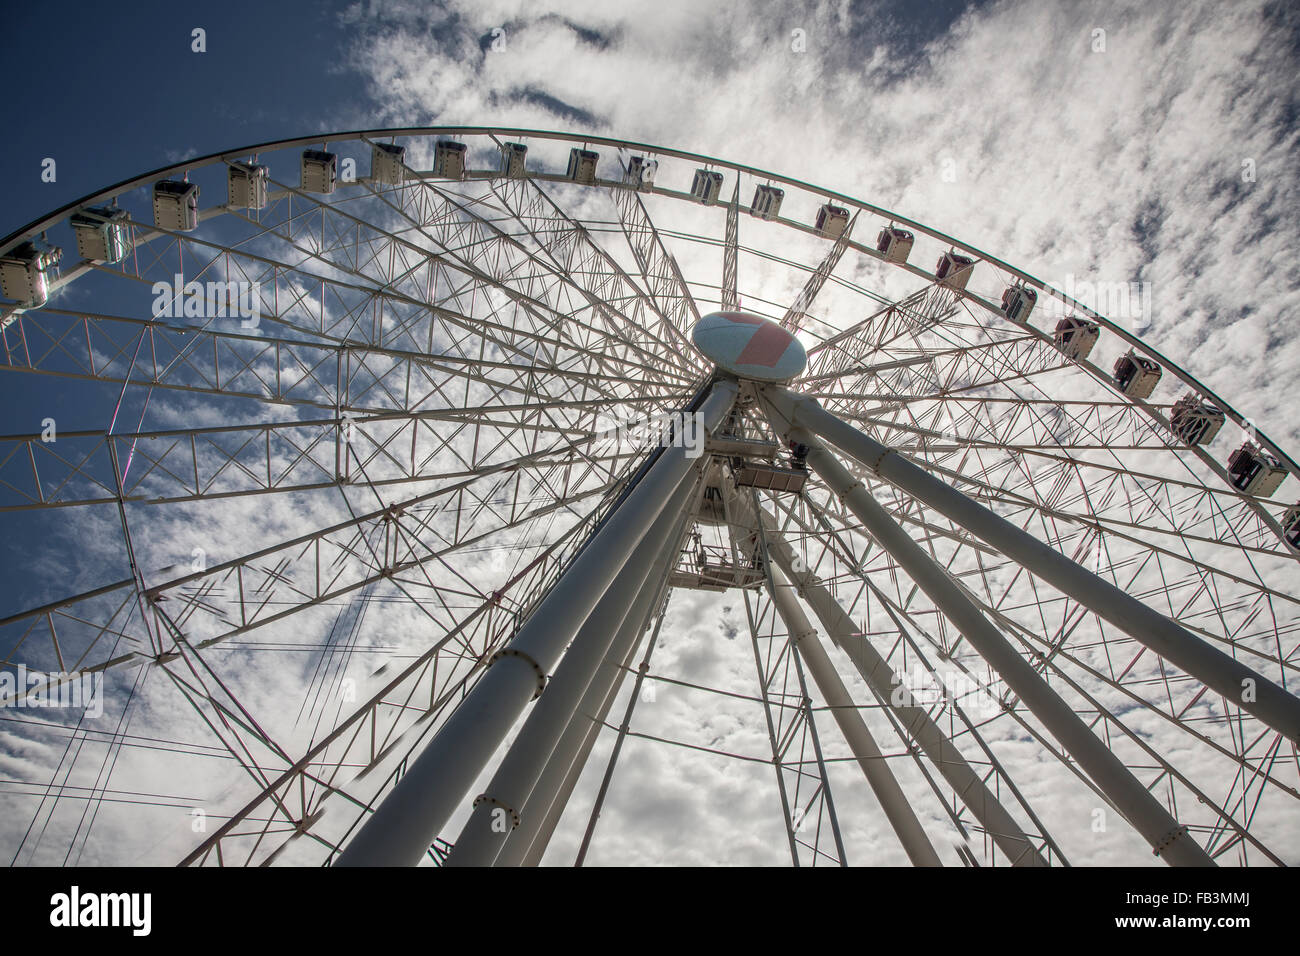 The Wheel of Brisbane is located at the South Bank in the heart of Brisbane's cultural, lifestyle and entertainment - Stock Image